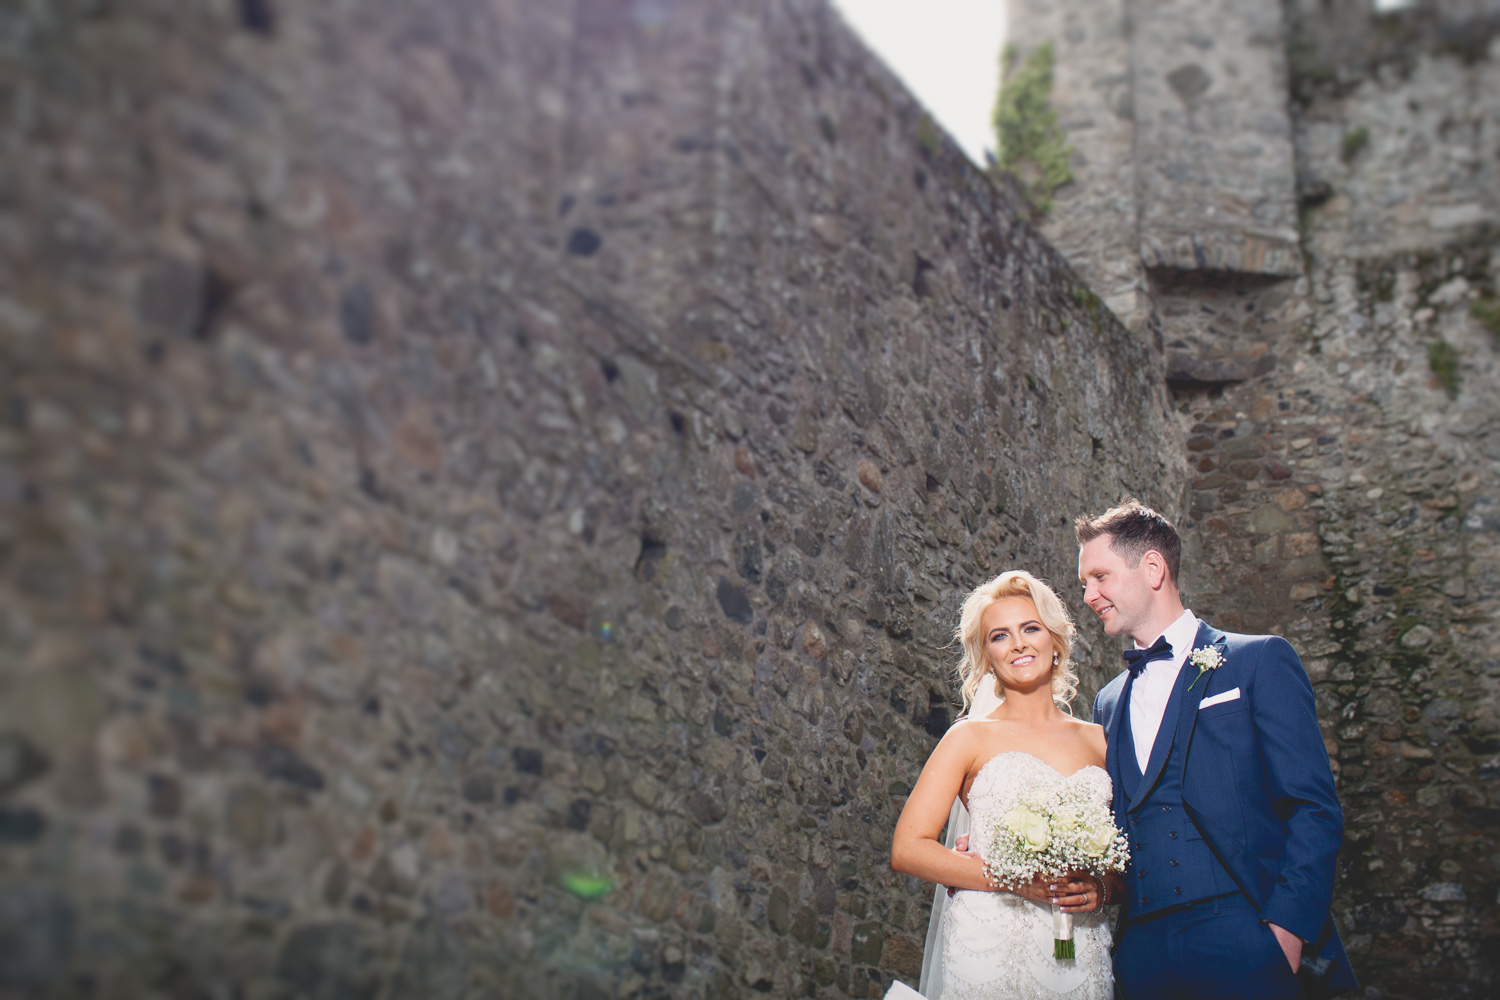 Mark_Barnes_wedding_photographer_Northern_Ireland_Wedding_photography_Carlingford_Four_Seasons_Wedding-39.jpg